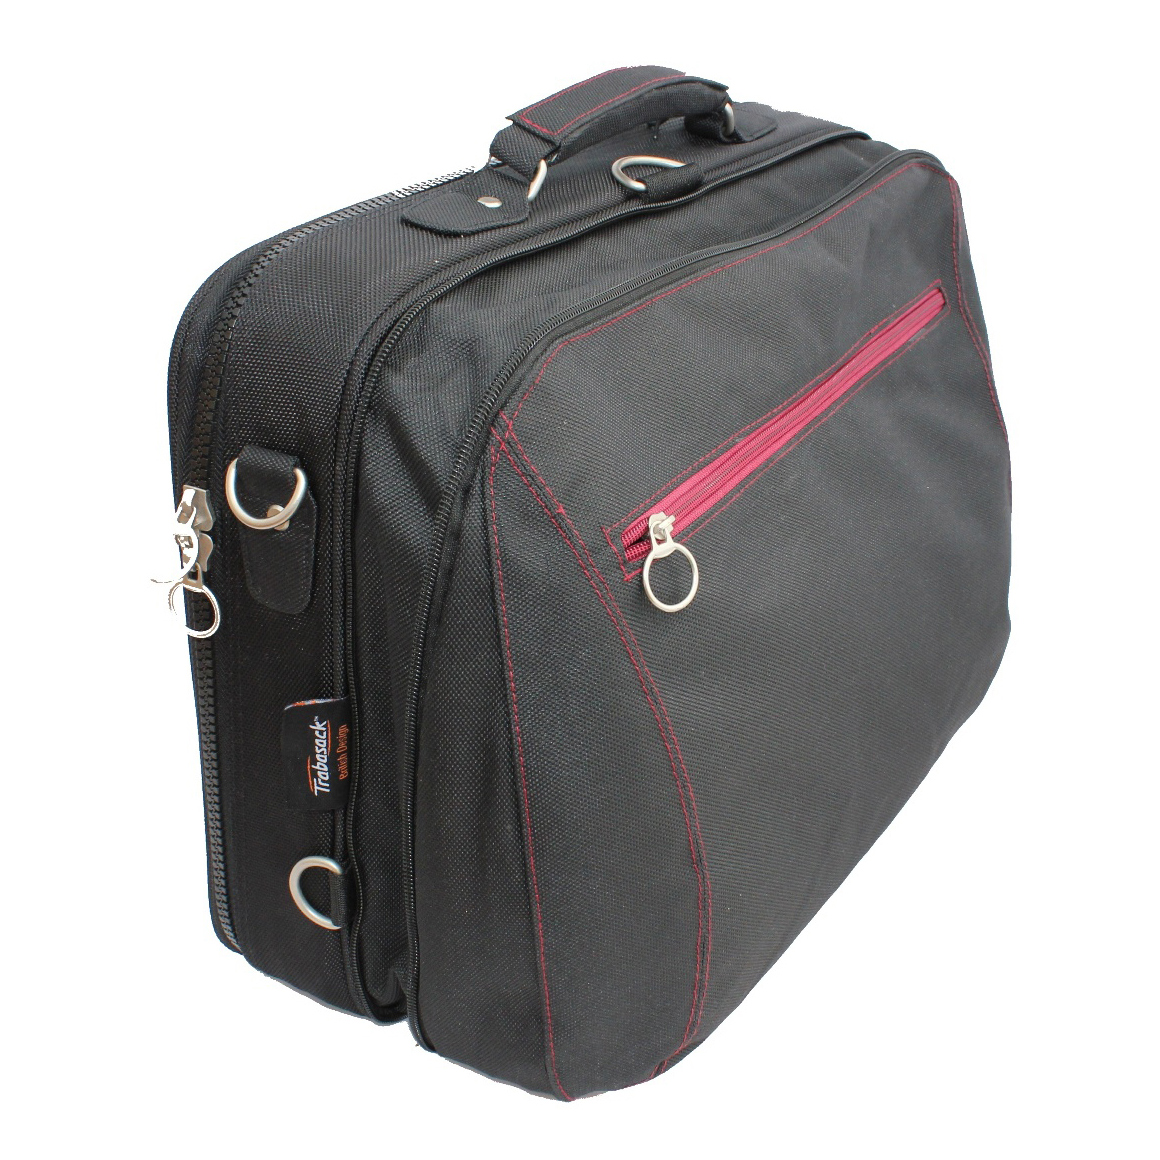 Max wheelchair bag and lap tray